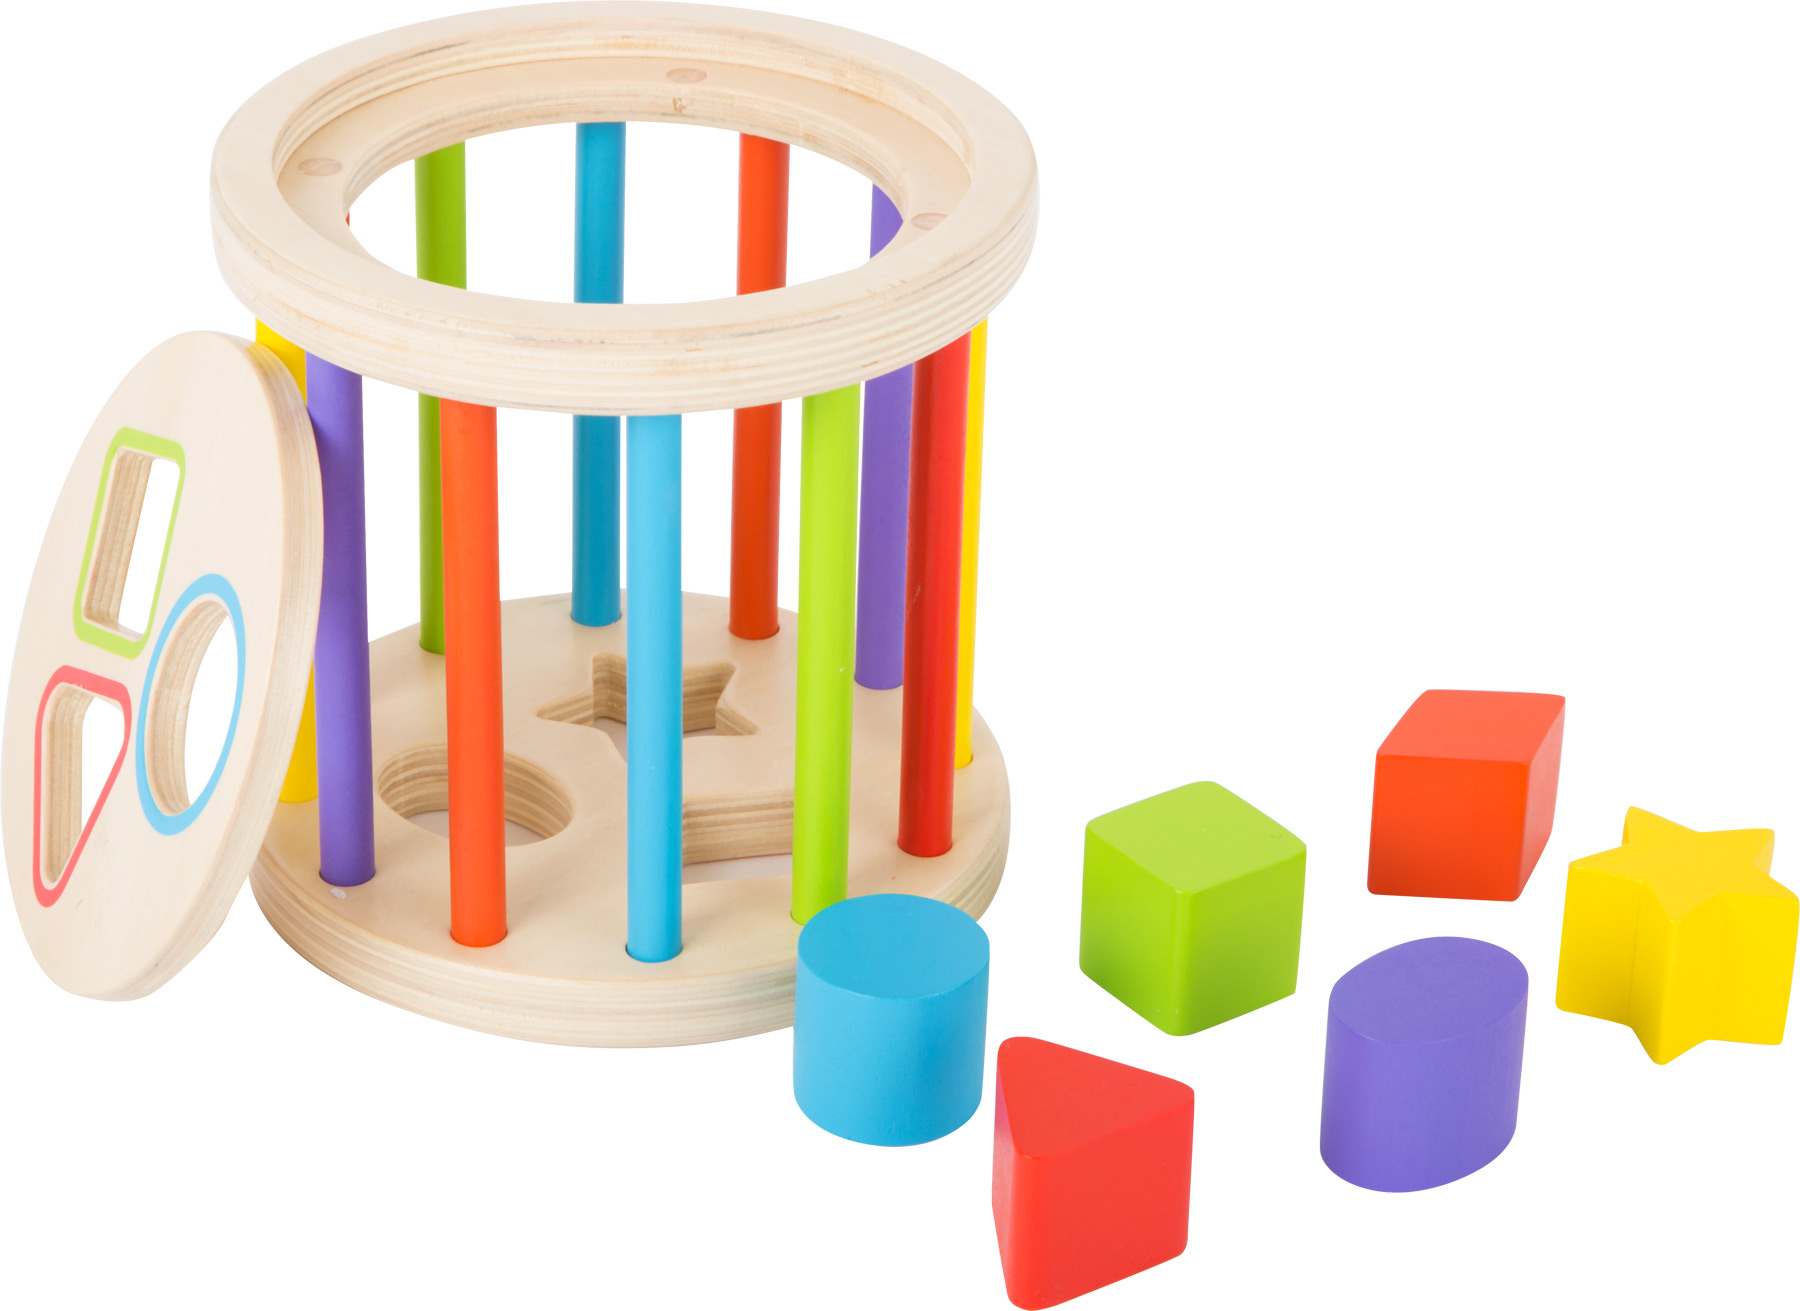 Colours and Shapes Motor Skills Toy Shape Fitting Games Toys